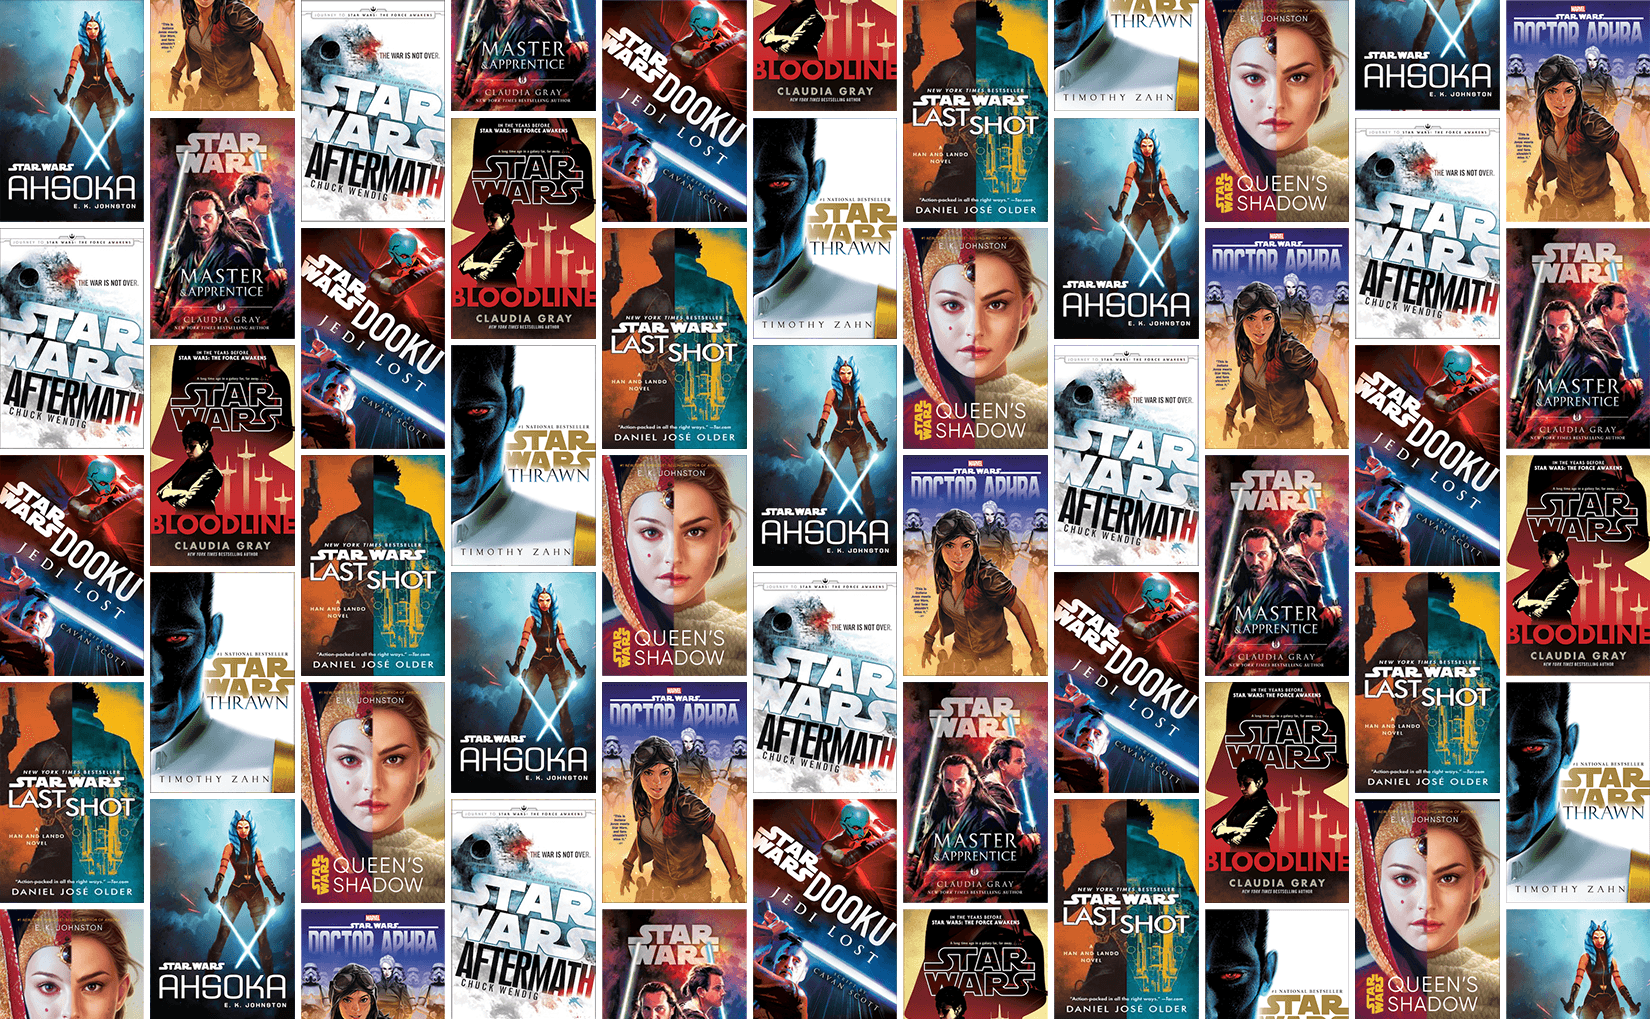 9 Books to Expand Your Star Wars Reading List